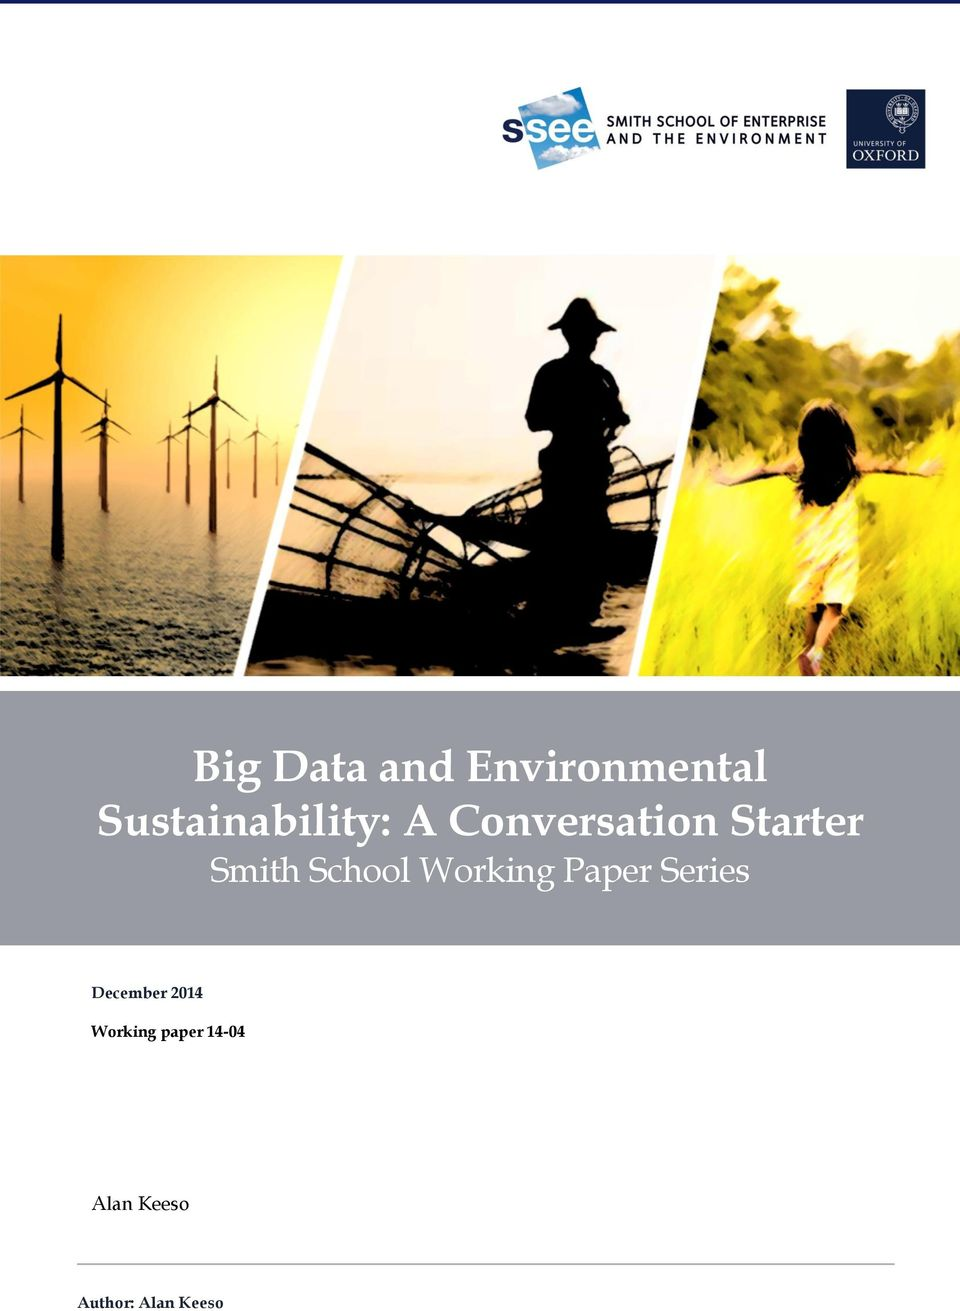 Smith School Working Paper Series December